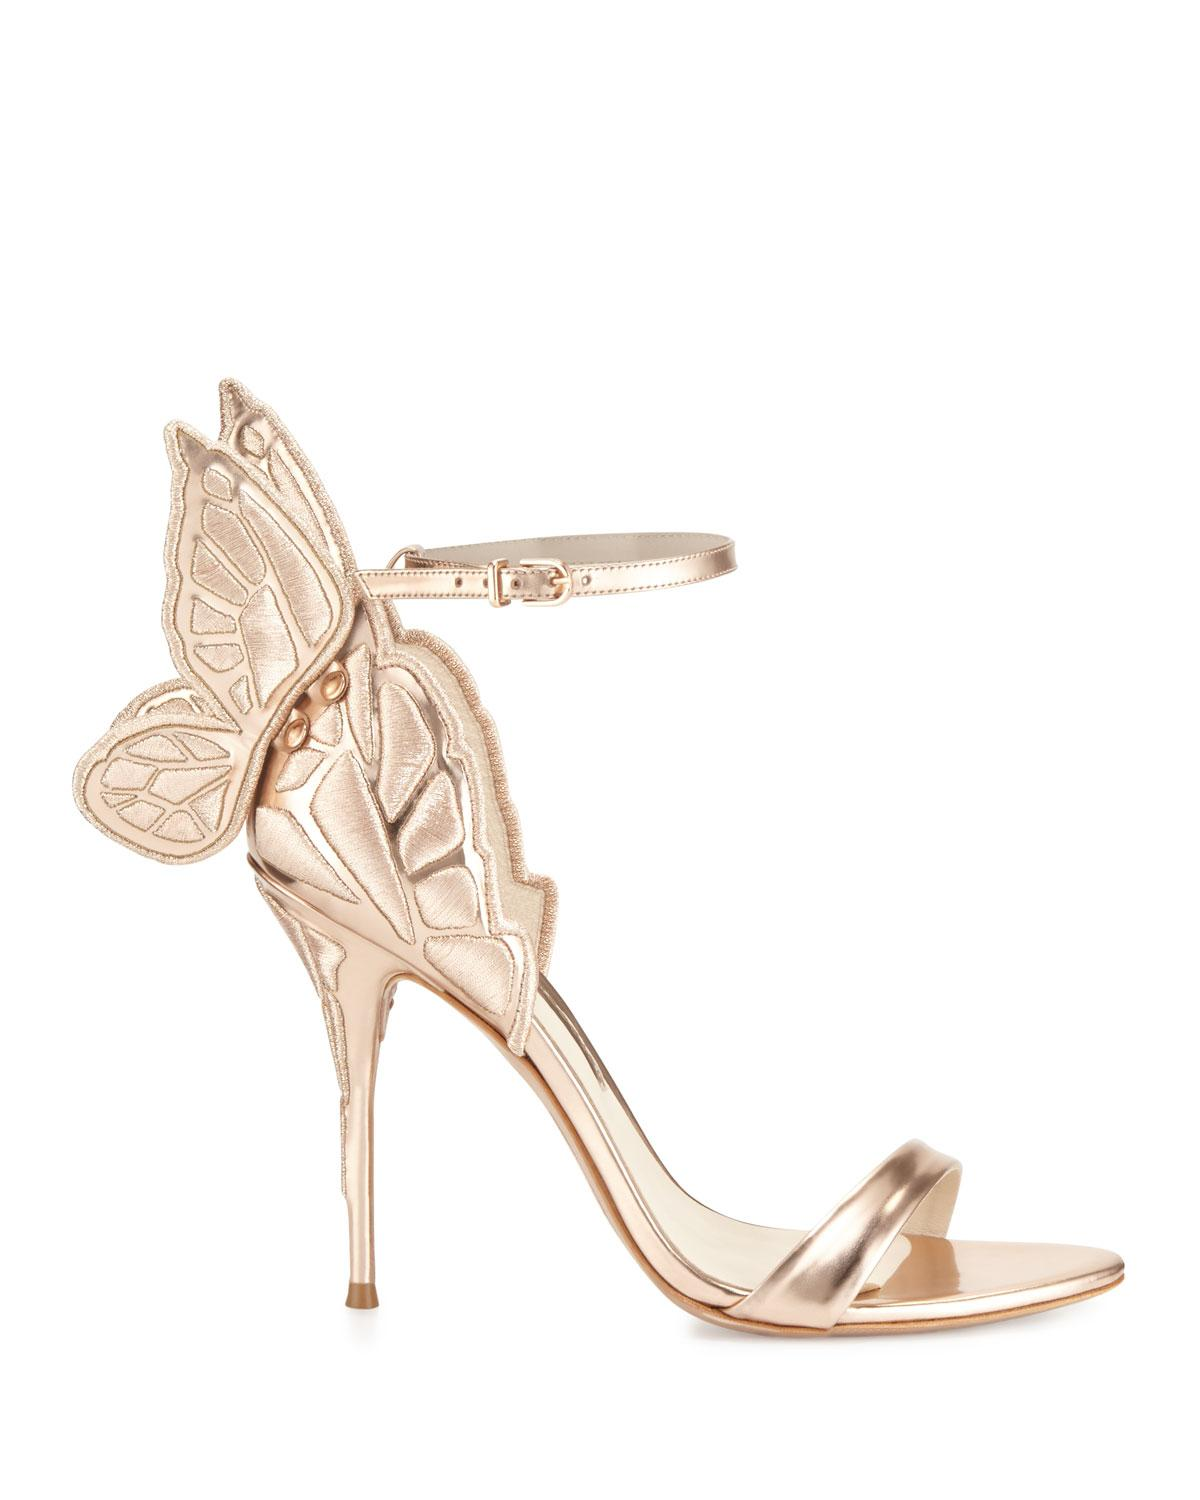 43f96ab44c Sophia Webster Chiara Butterfly Wing Ankle-wrap Sandals in Metallic - Save  9% - Lyst